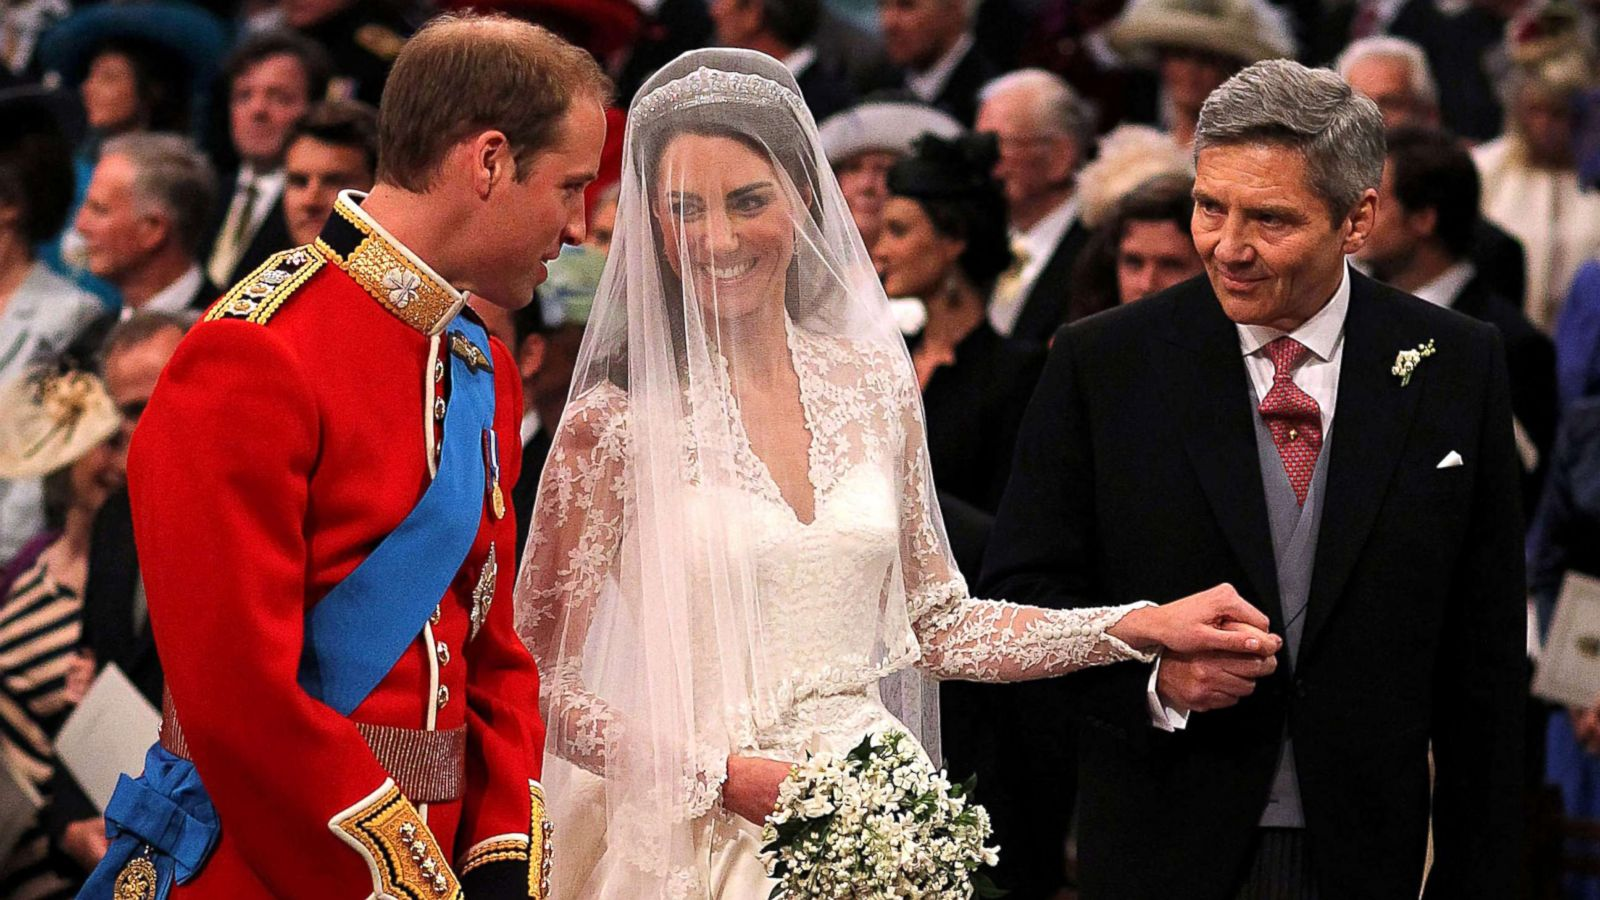 Prince Harry and Meghan Markle\'s royal wedding: Look back at some of ...